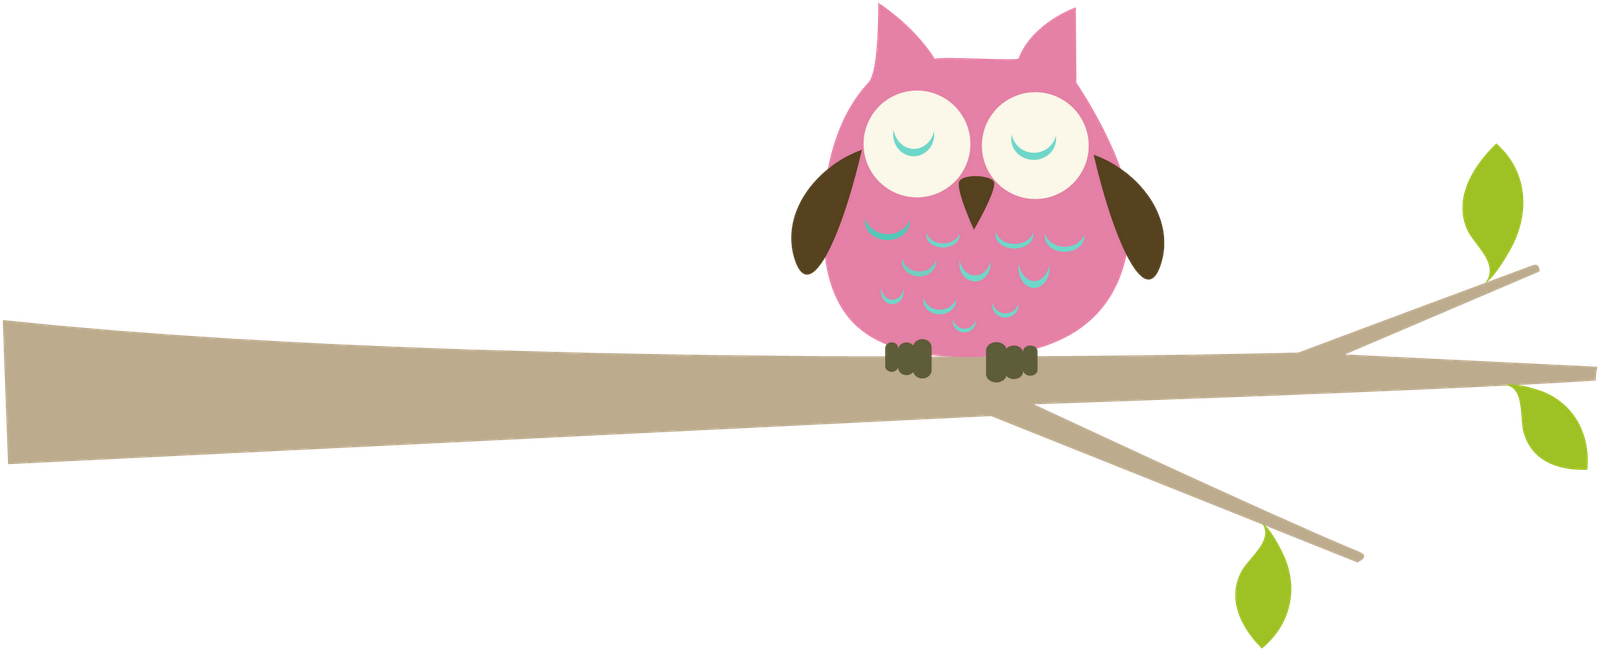 Owl on tree clipart clipart royalty free library owl-borders-clip-art-cliparts-co-IPExYp-clipart.png (1600×651 ... clipart royalty free library